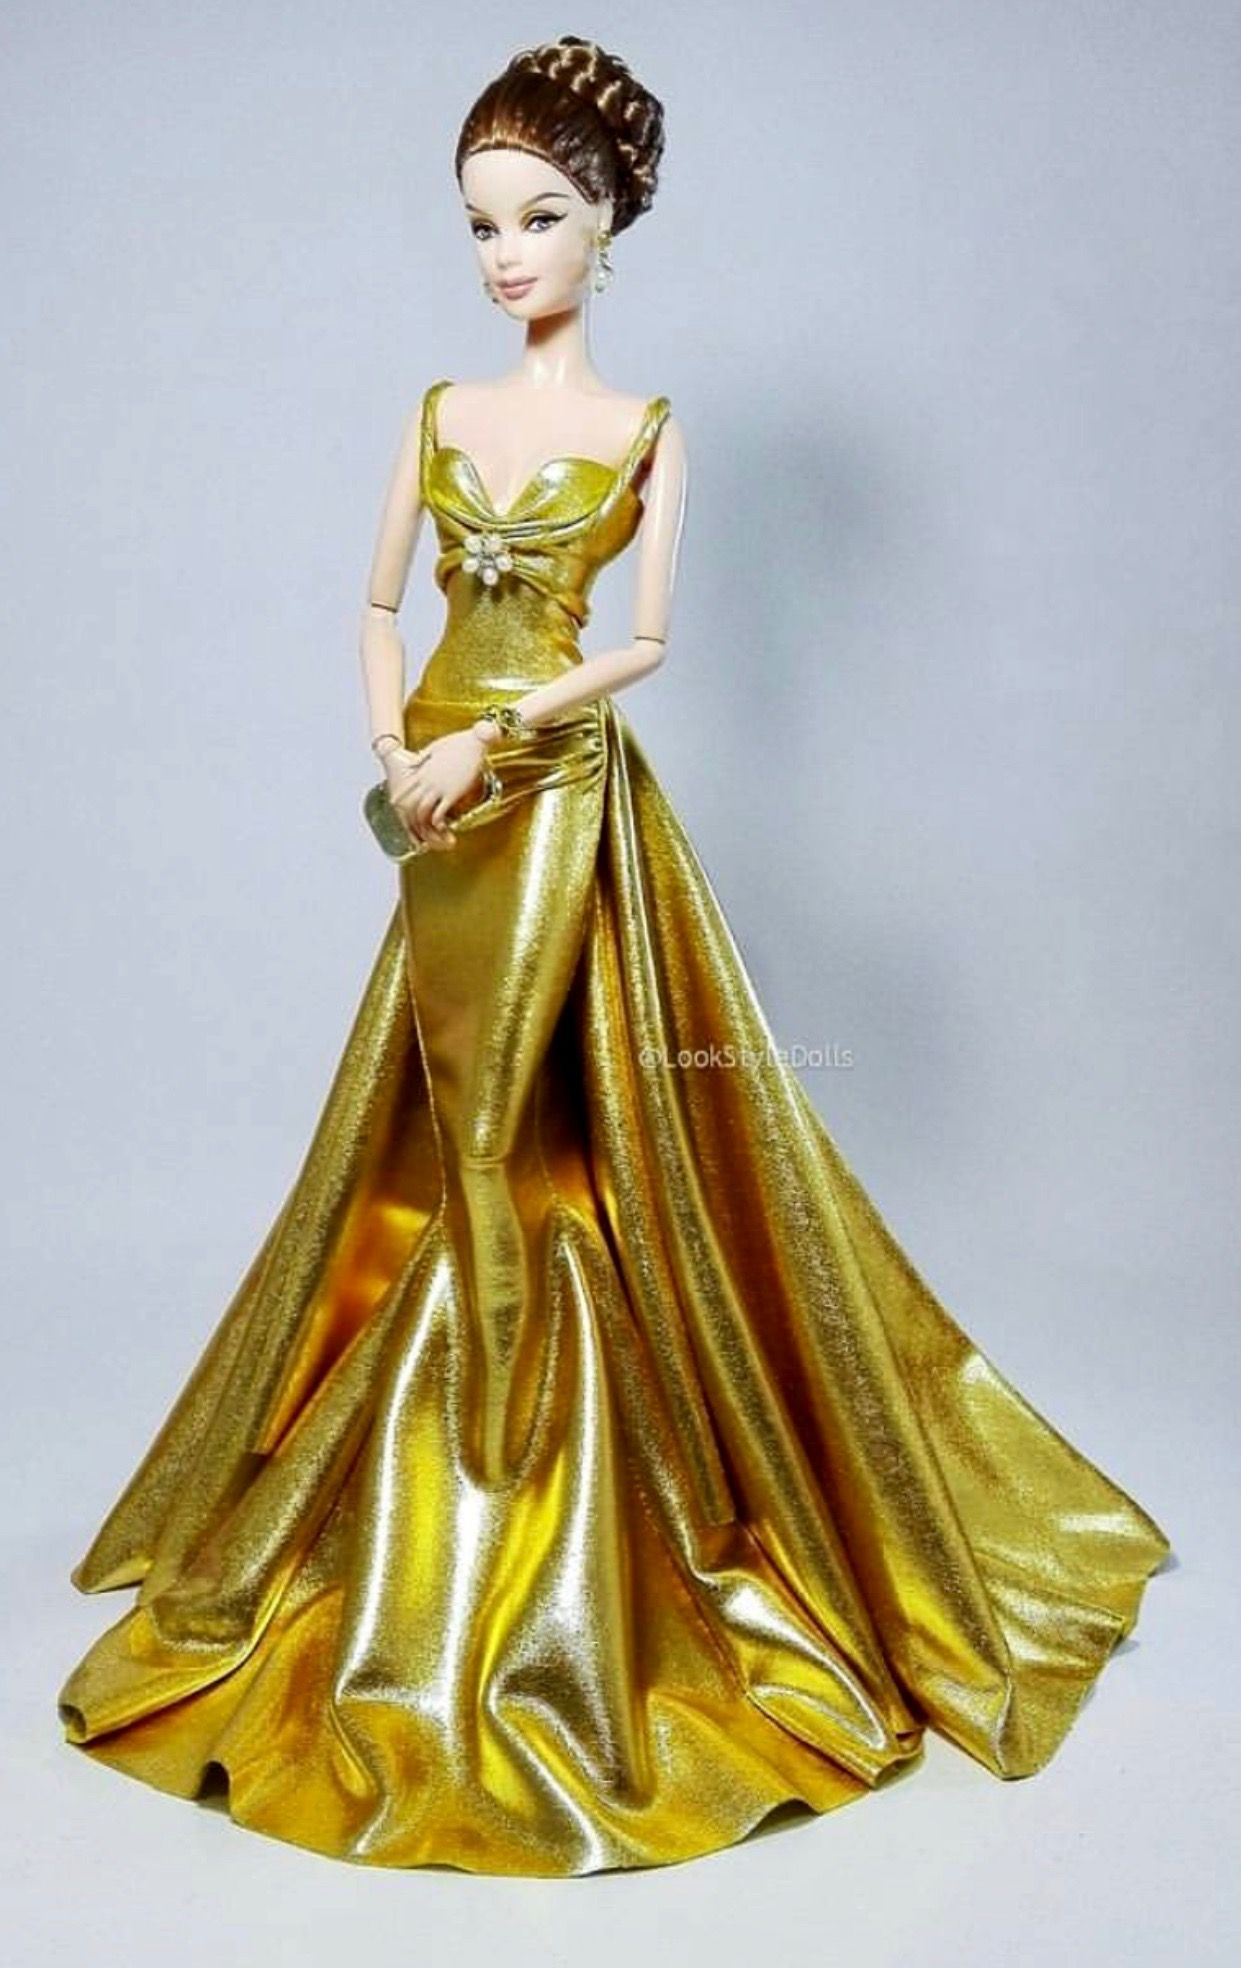 lookstyledolls | Barbie Clothes | Pinterest | Dolls, Barbie doll and ...